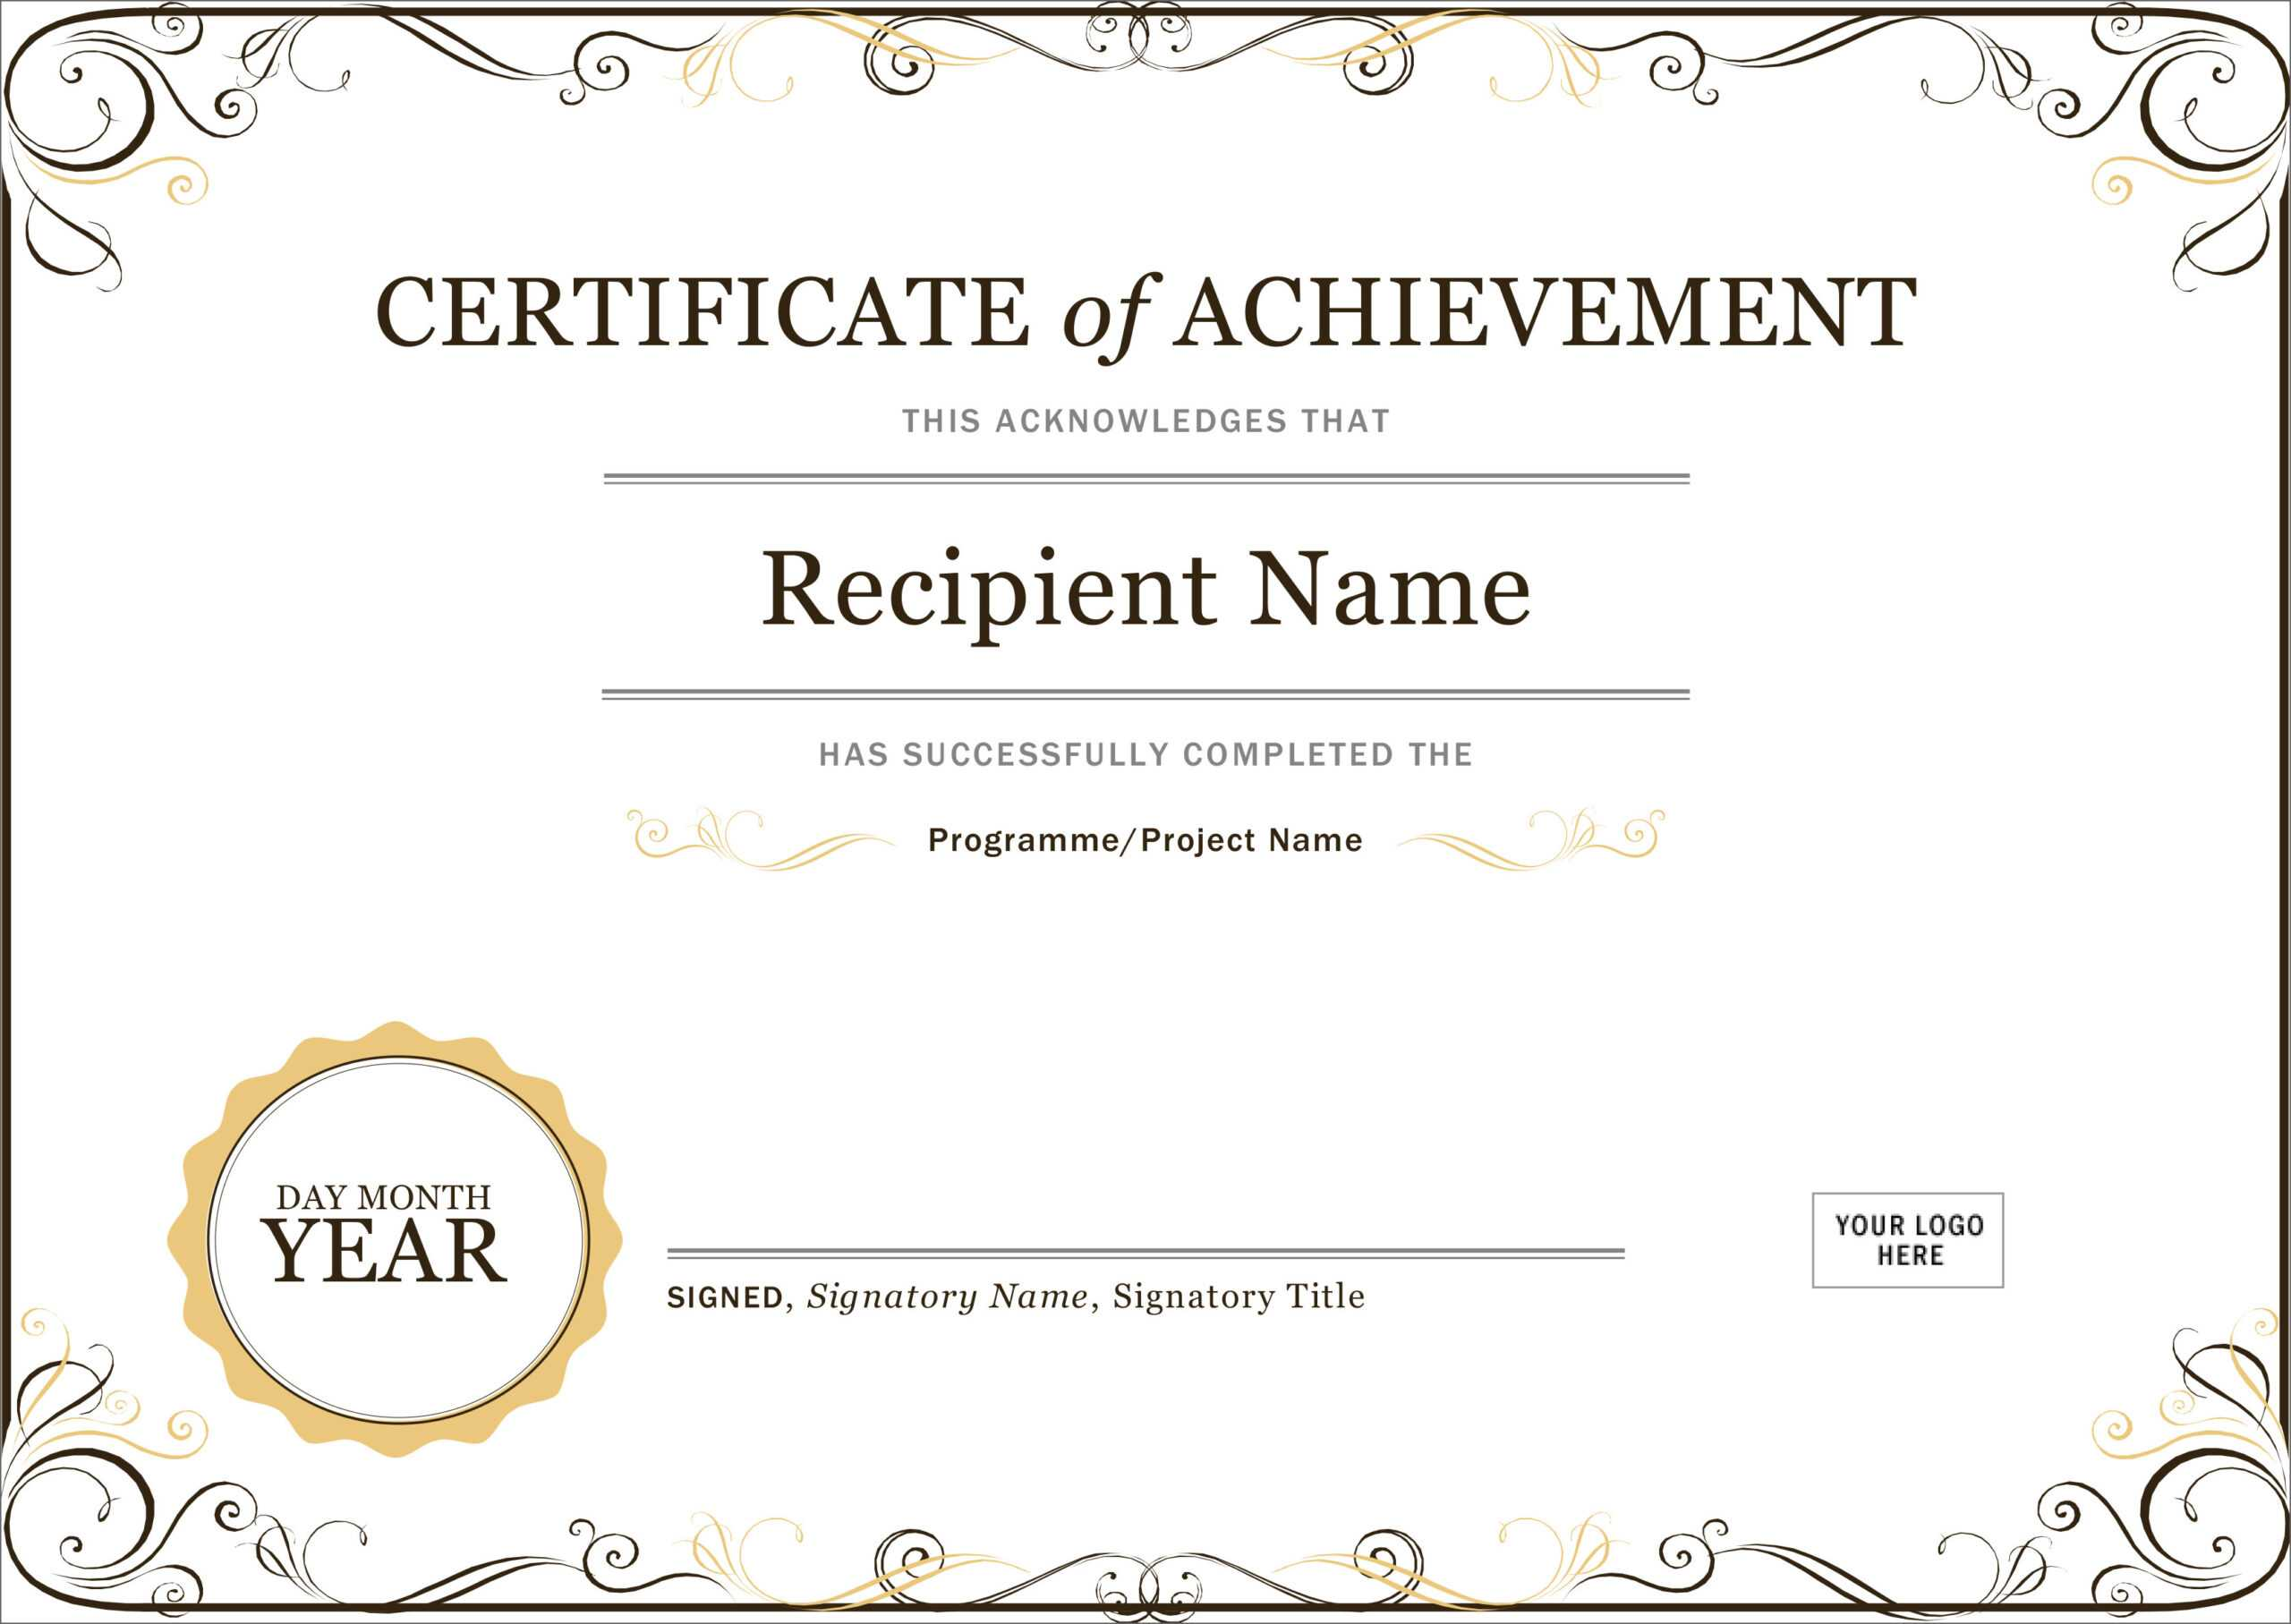 50 Free Creative Blank Certificate Templates In Psd With Regard To Update Certificates That Use Certificate Templates